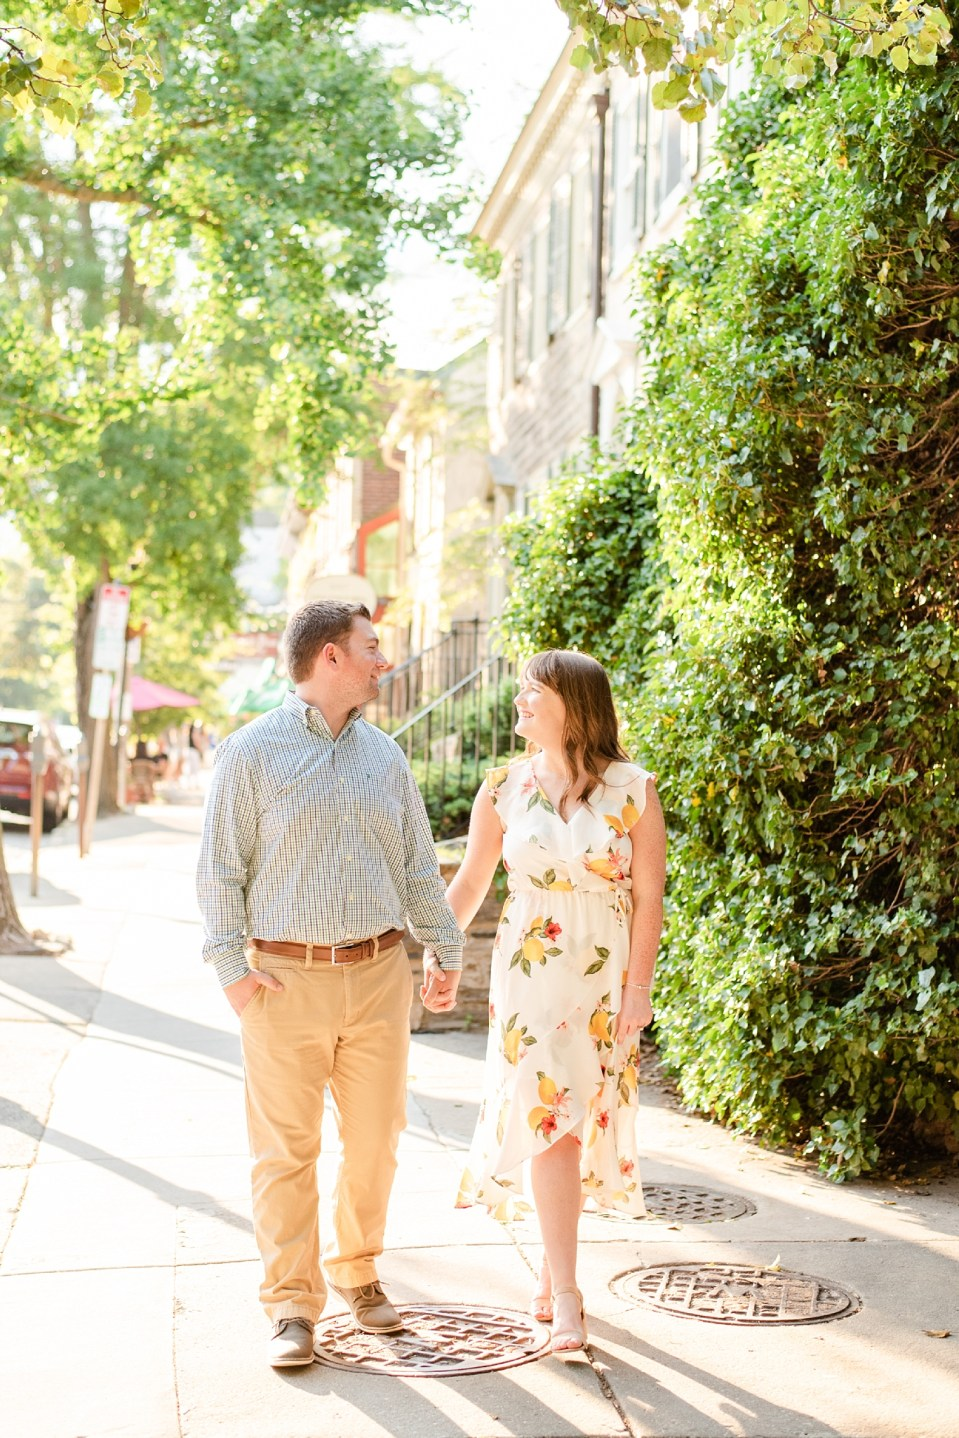 Renee Nicolo Photography photographs summer engagement session in Chestnut Hill